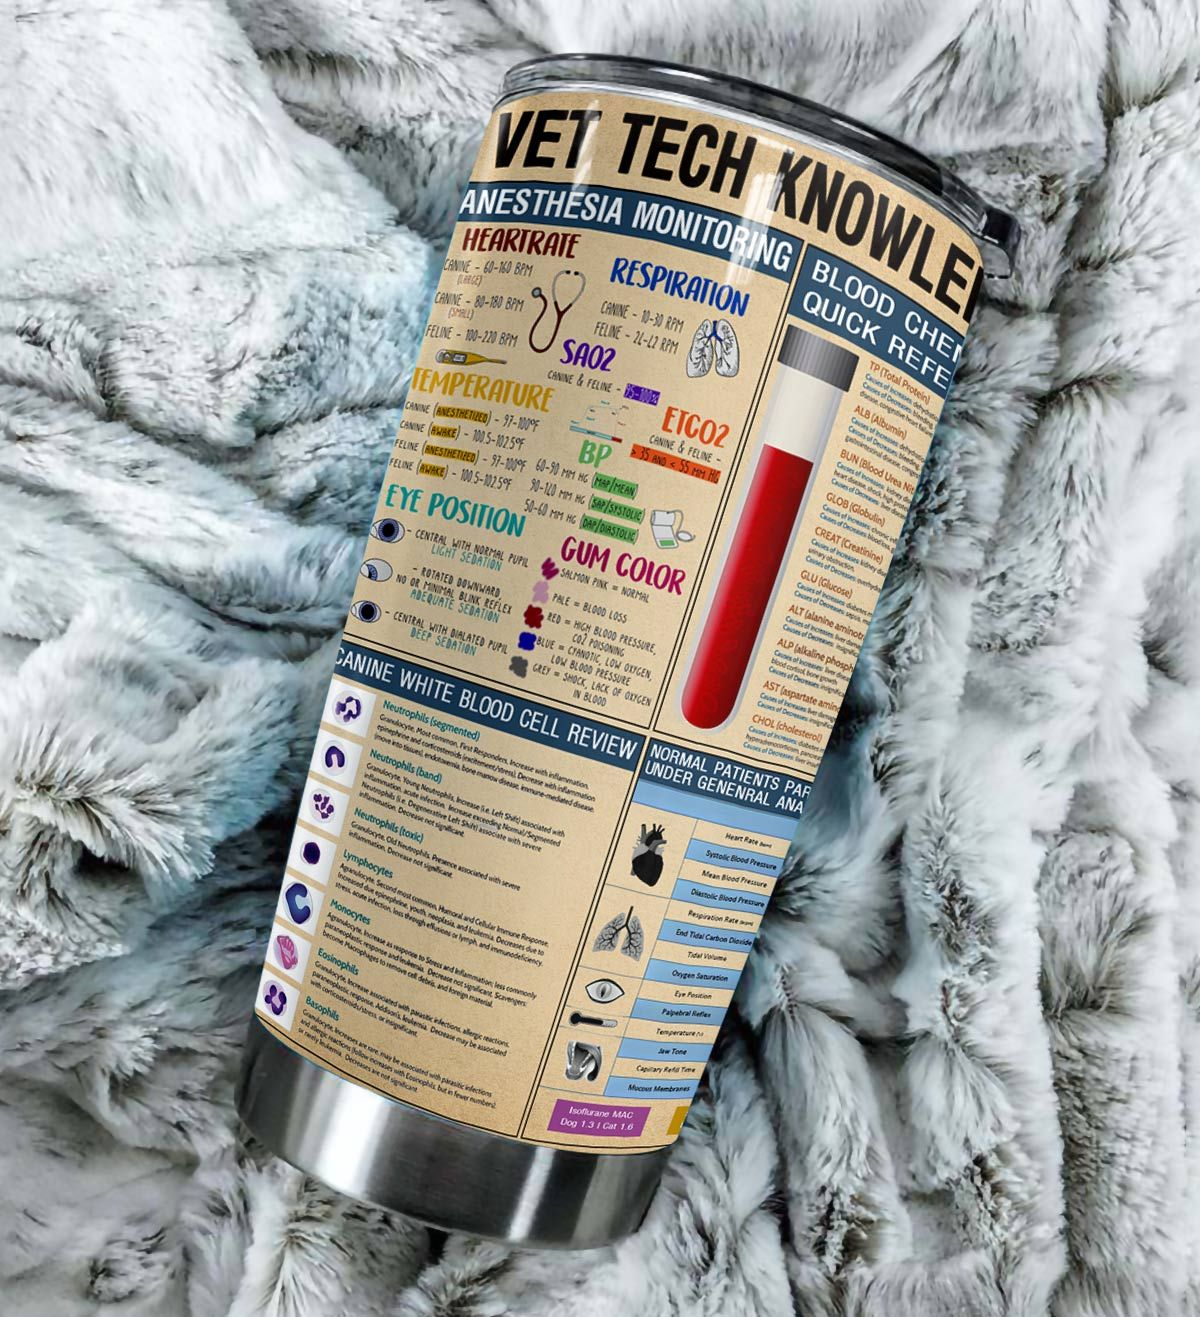 Vet tech knowledge all over printed tumbler 2